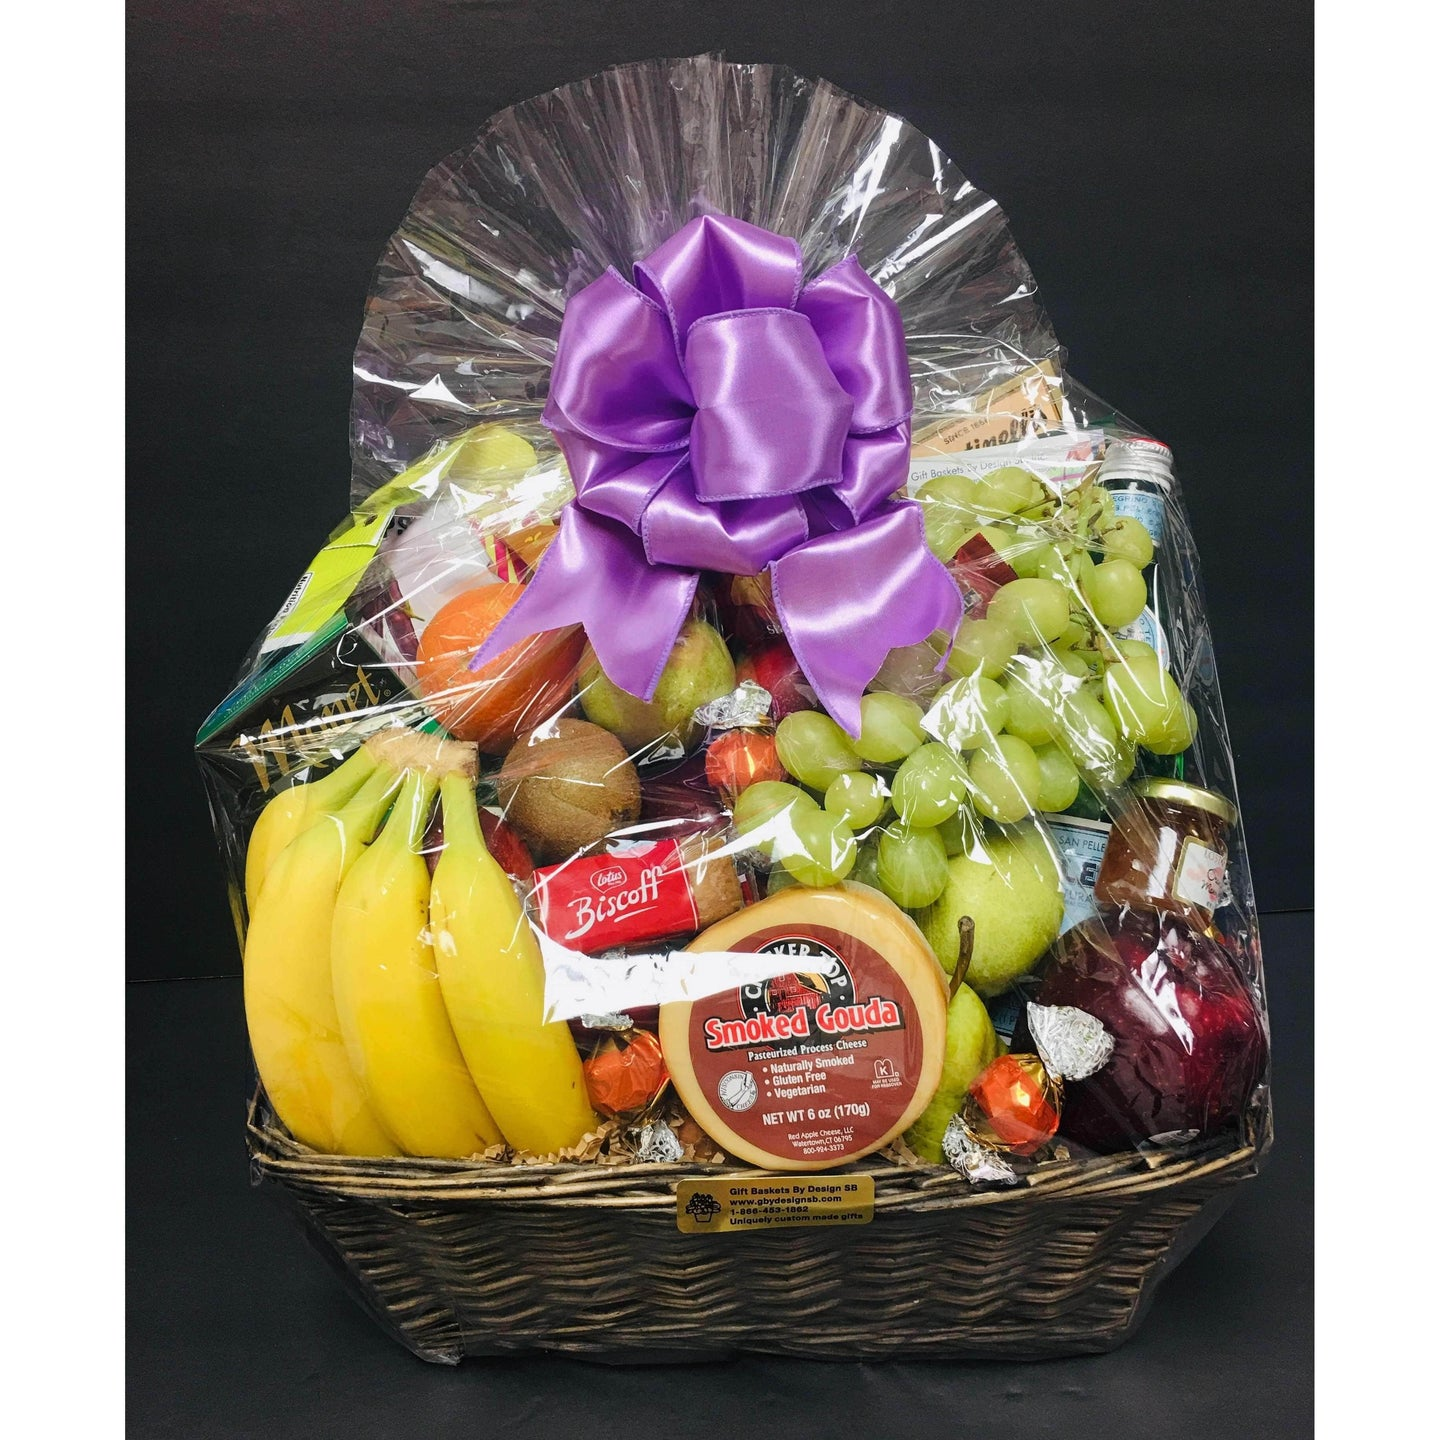 Deepest Sympathy - Gift Baskets By Design SB, Inc.